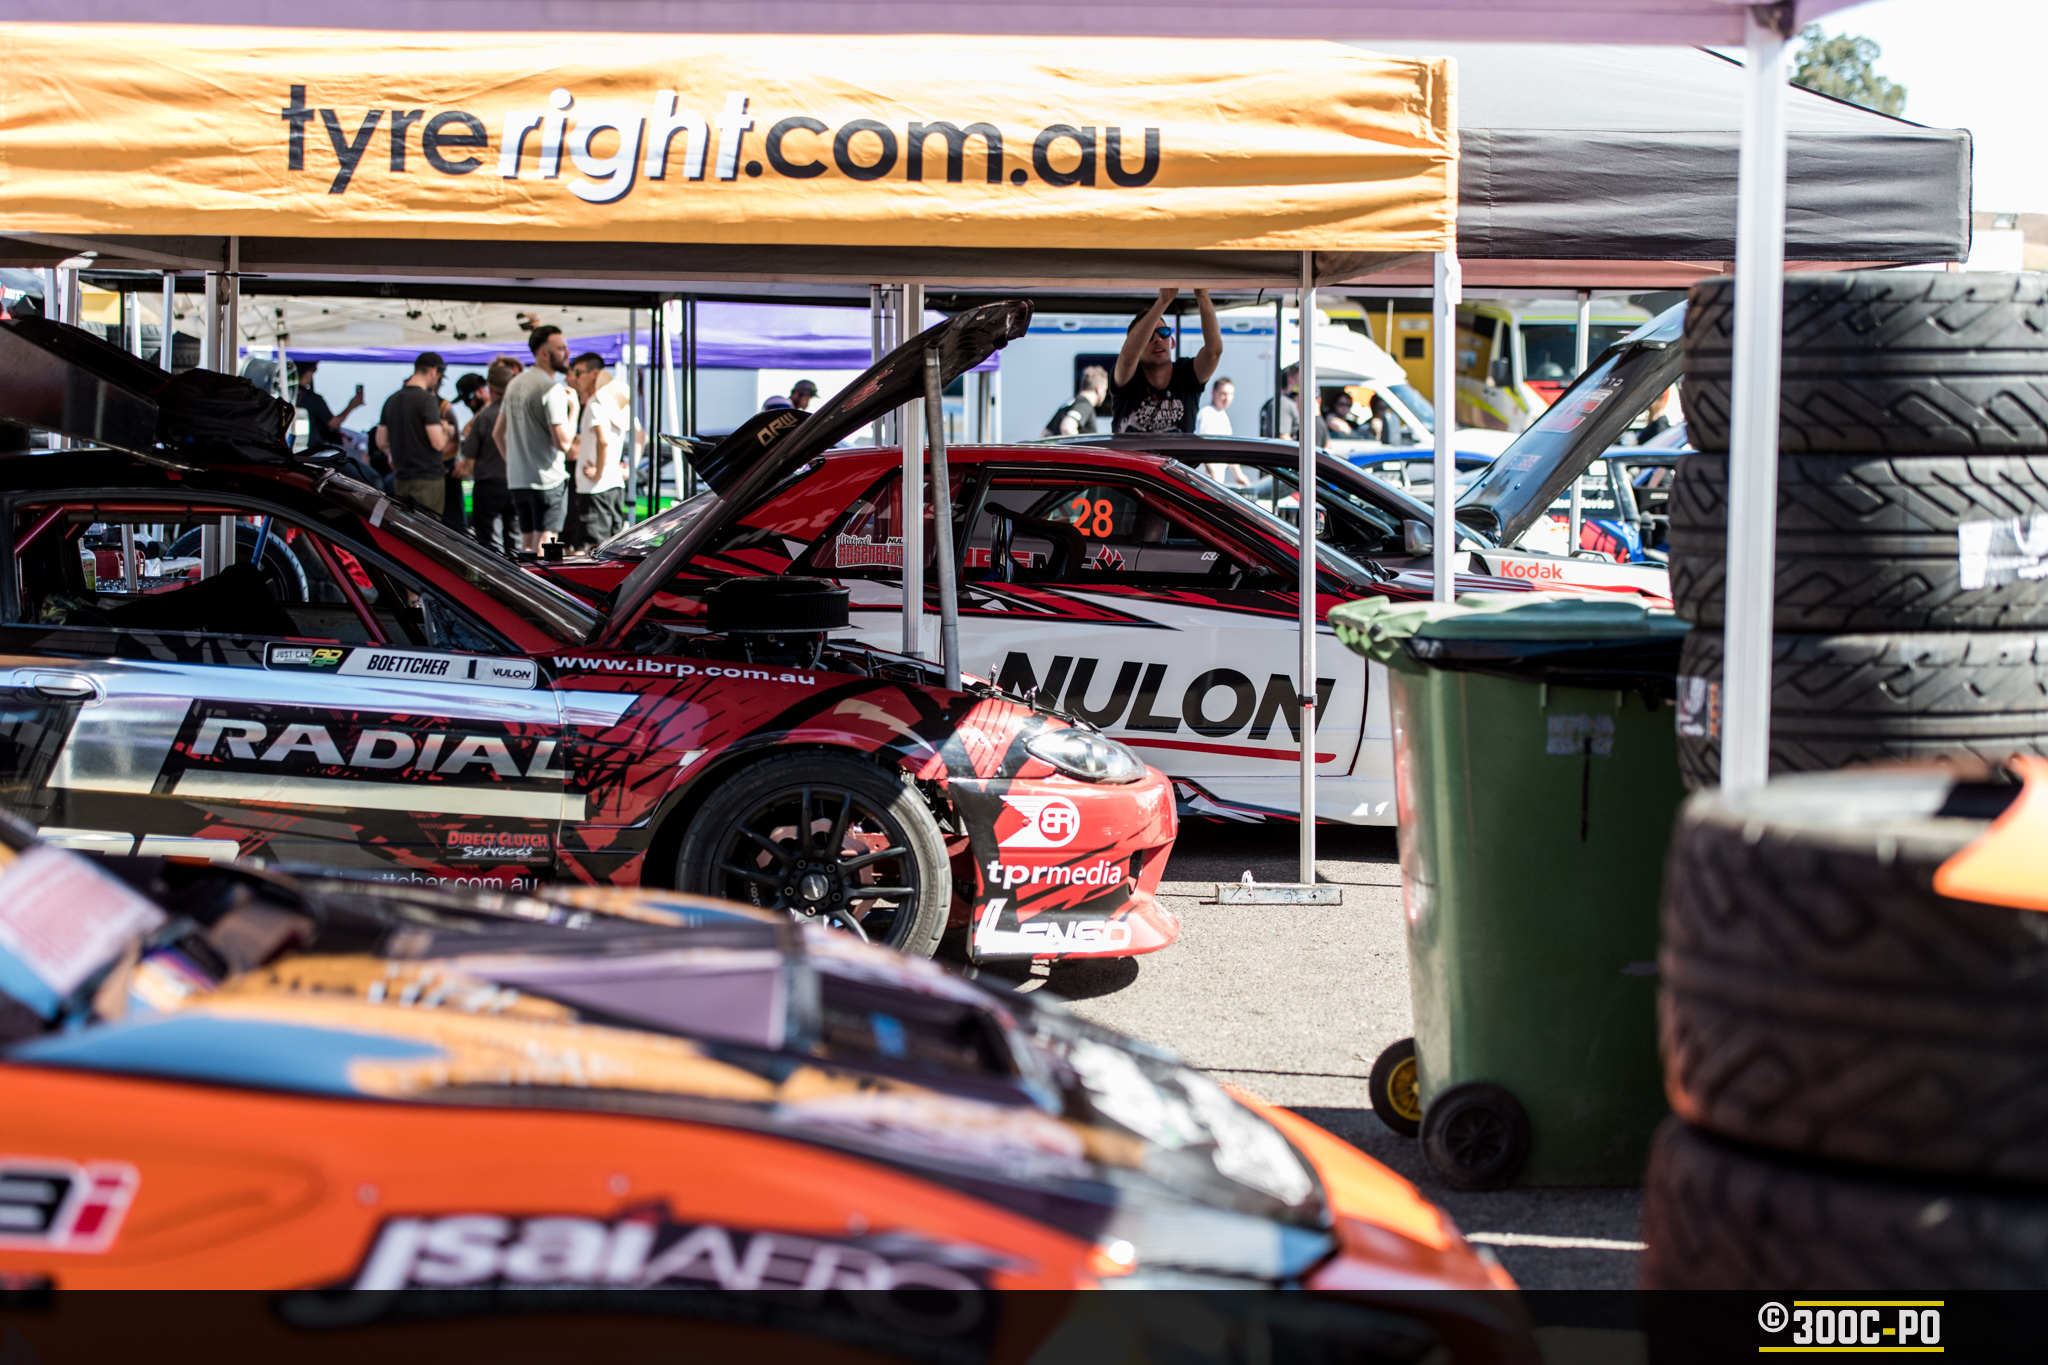 2017-10-12 - WTAC 2017 Test Day 050